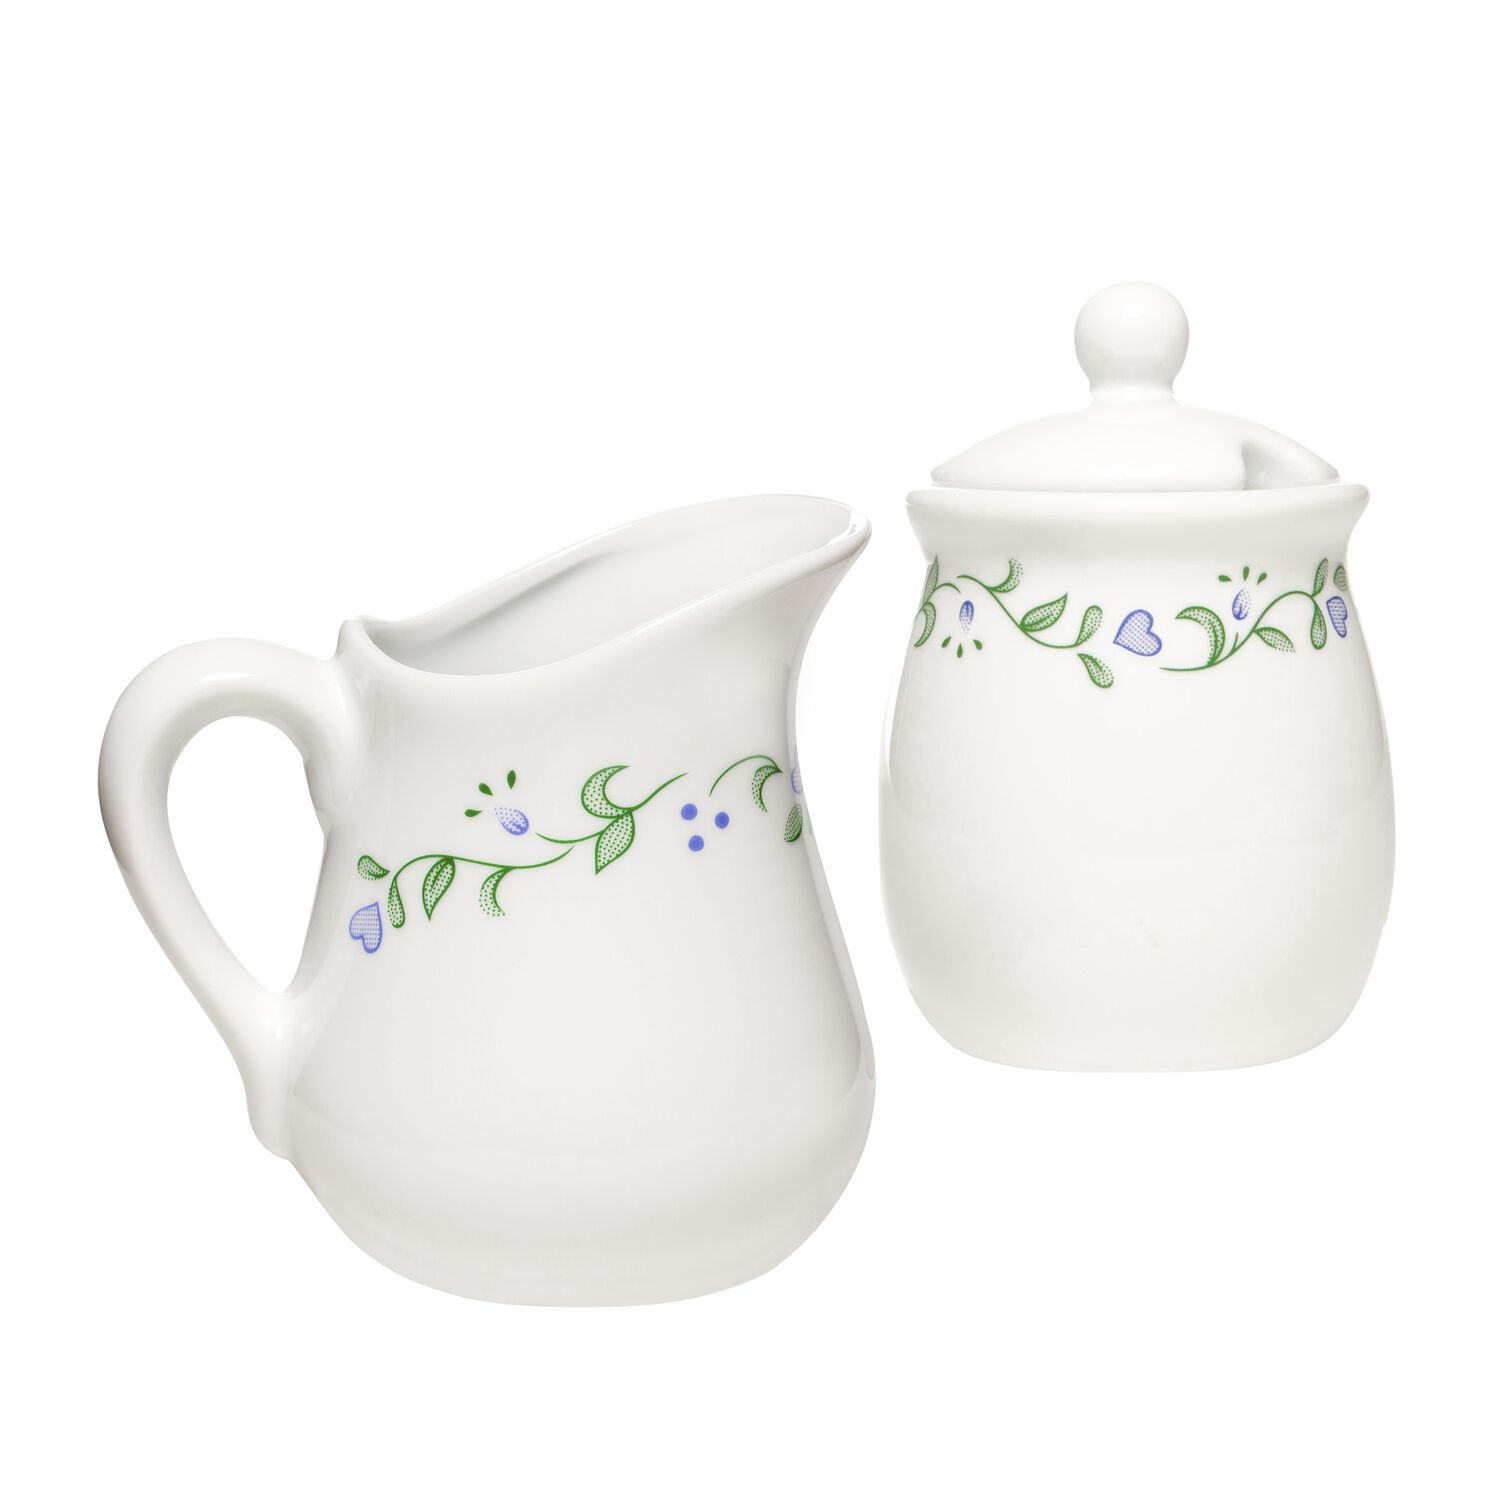 corelle® coordinates® country cottage sugar  creamer set  shop  - coordinates® country cottage sugar  creamer set loading zoom